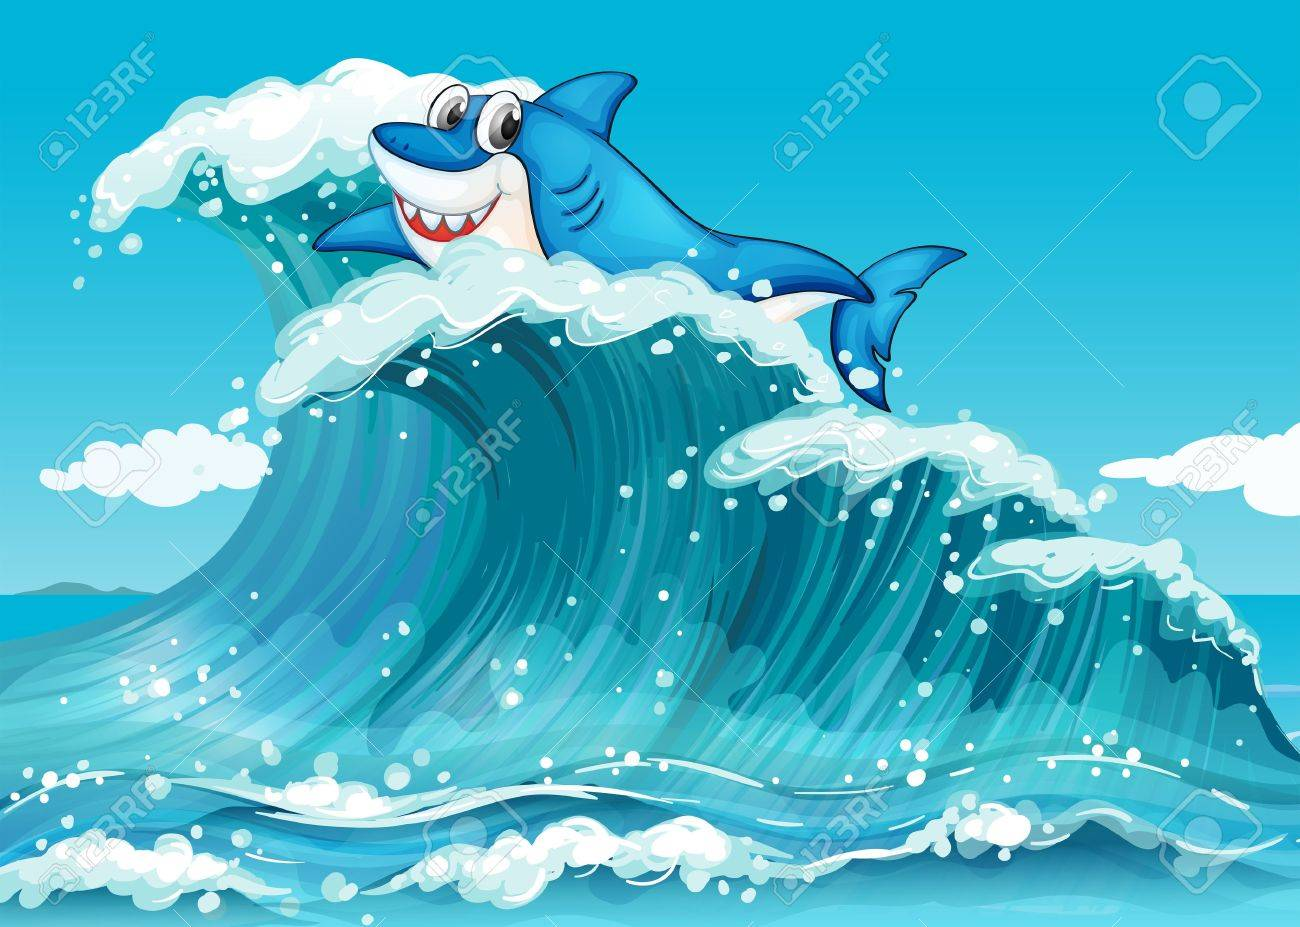 Illustration of a shark above the big waves Stock Vector - 19874683